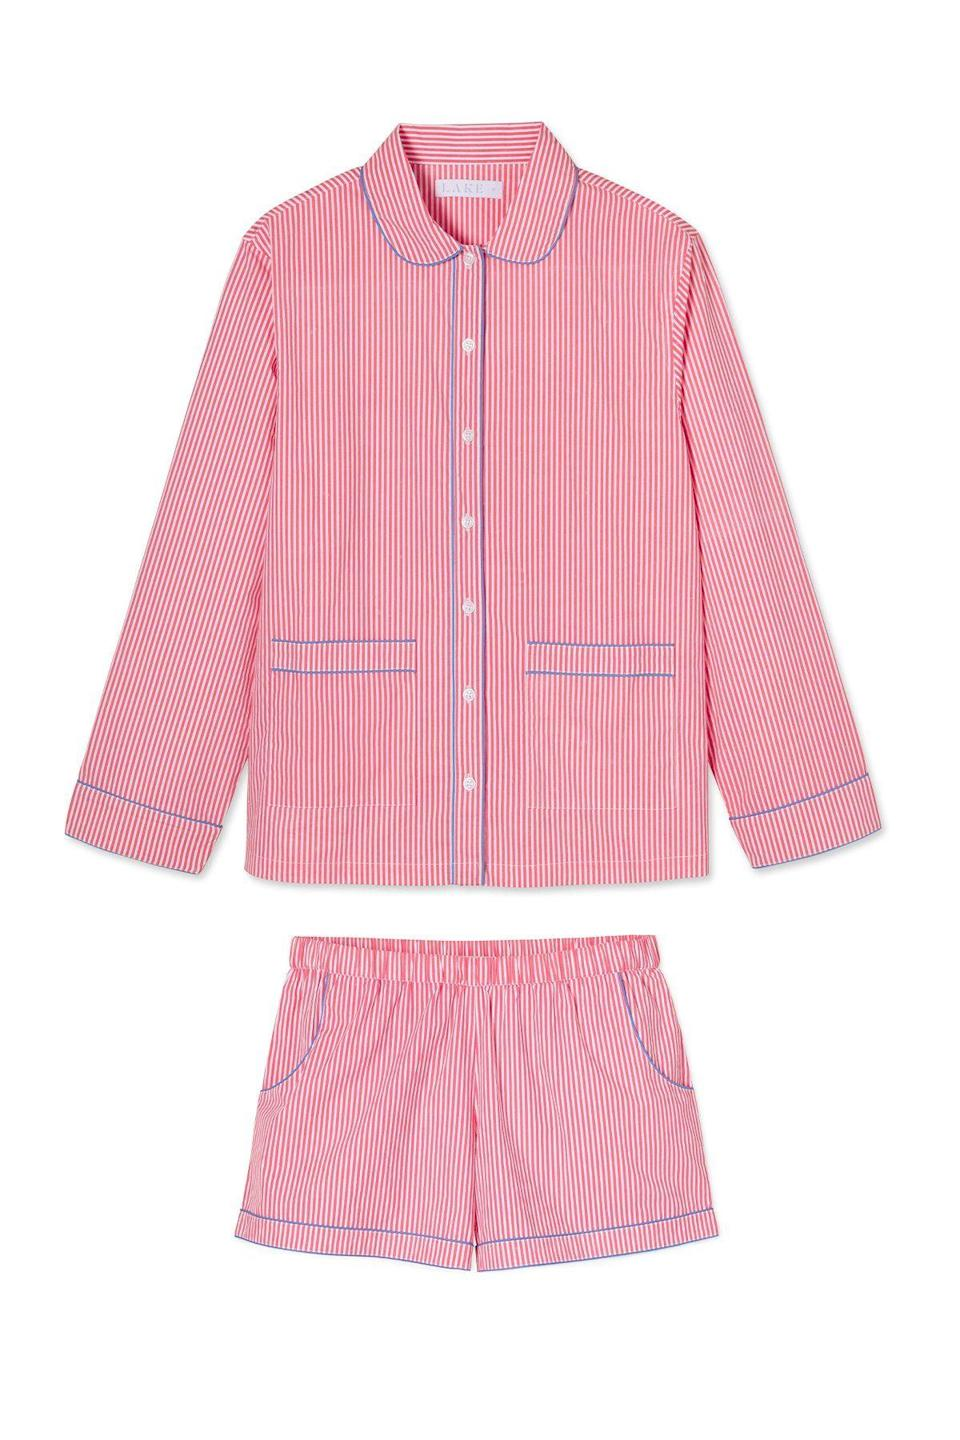 "<p>lakepajamas.com</p><p><strong>$118.00</strong></p><p><a href=""https://go.redirectingat.com?id=74968X1596630&url=https%3A%2F%2Flakepajamas.com%2Fcollections%2Fnew-arrivals%2Fproducts%2Fpicnic-poplin-piped-shorts-set&sref=https%3A%2F%2Fwww.countryliving.com%2Fshopping%2Fgifts%2Fg35120806%2Fbest-pajamas%2F"" rel=""nofollow noopener"" target=""_blank"" data-ylk=""slk:Shop Now"" class=""link rapid-noclick-resp"">Shop Now</a></p><p>Another great choice from Lake Pajamas. This set has blue piping that offsets the red stripes in the most subtly patriotic way. </p>"